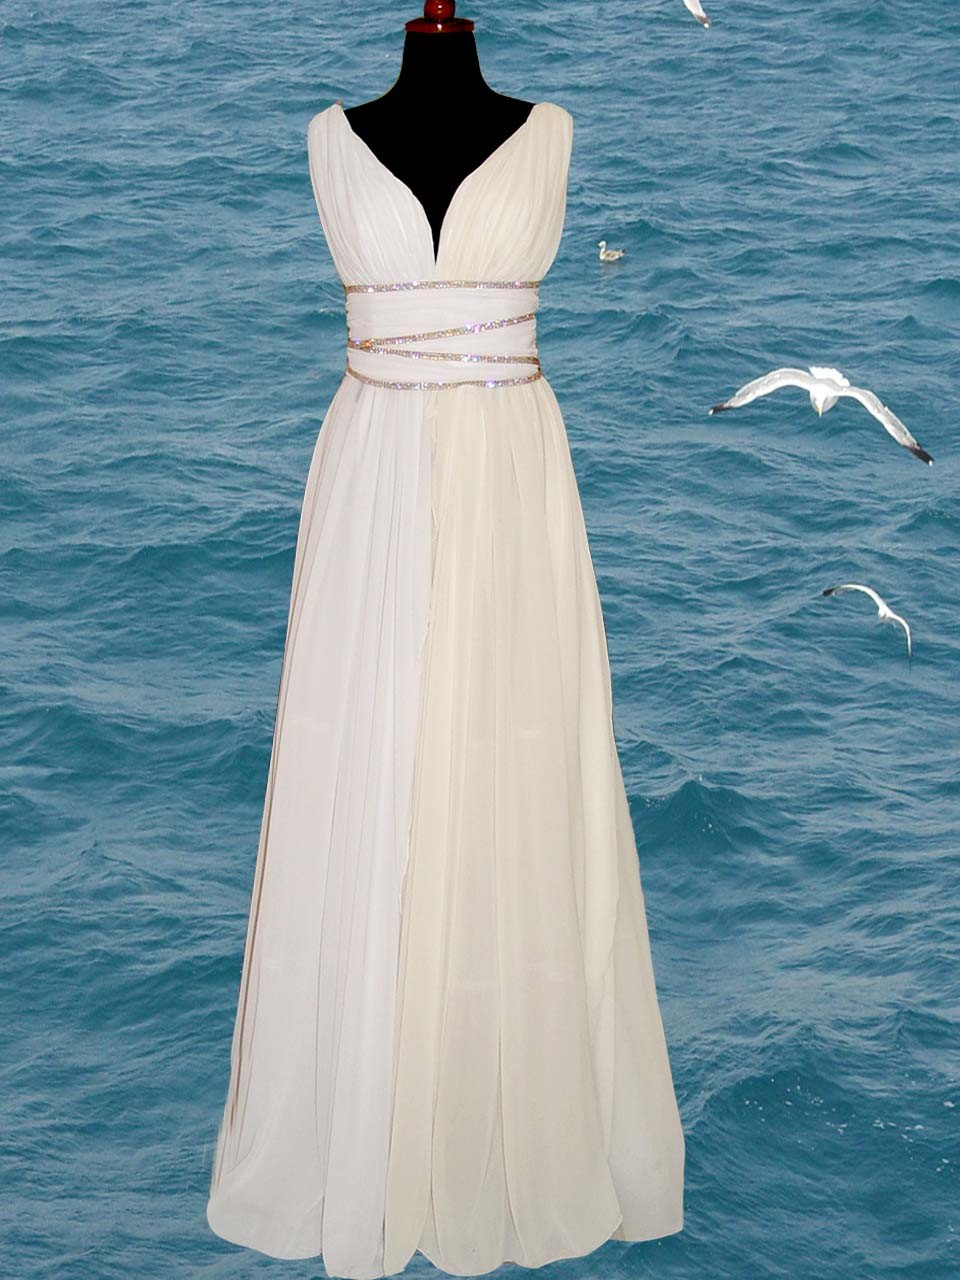 Marne 39 s blog greek goddess wedding dress for Grecian goddess wedding dresses